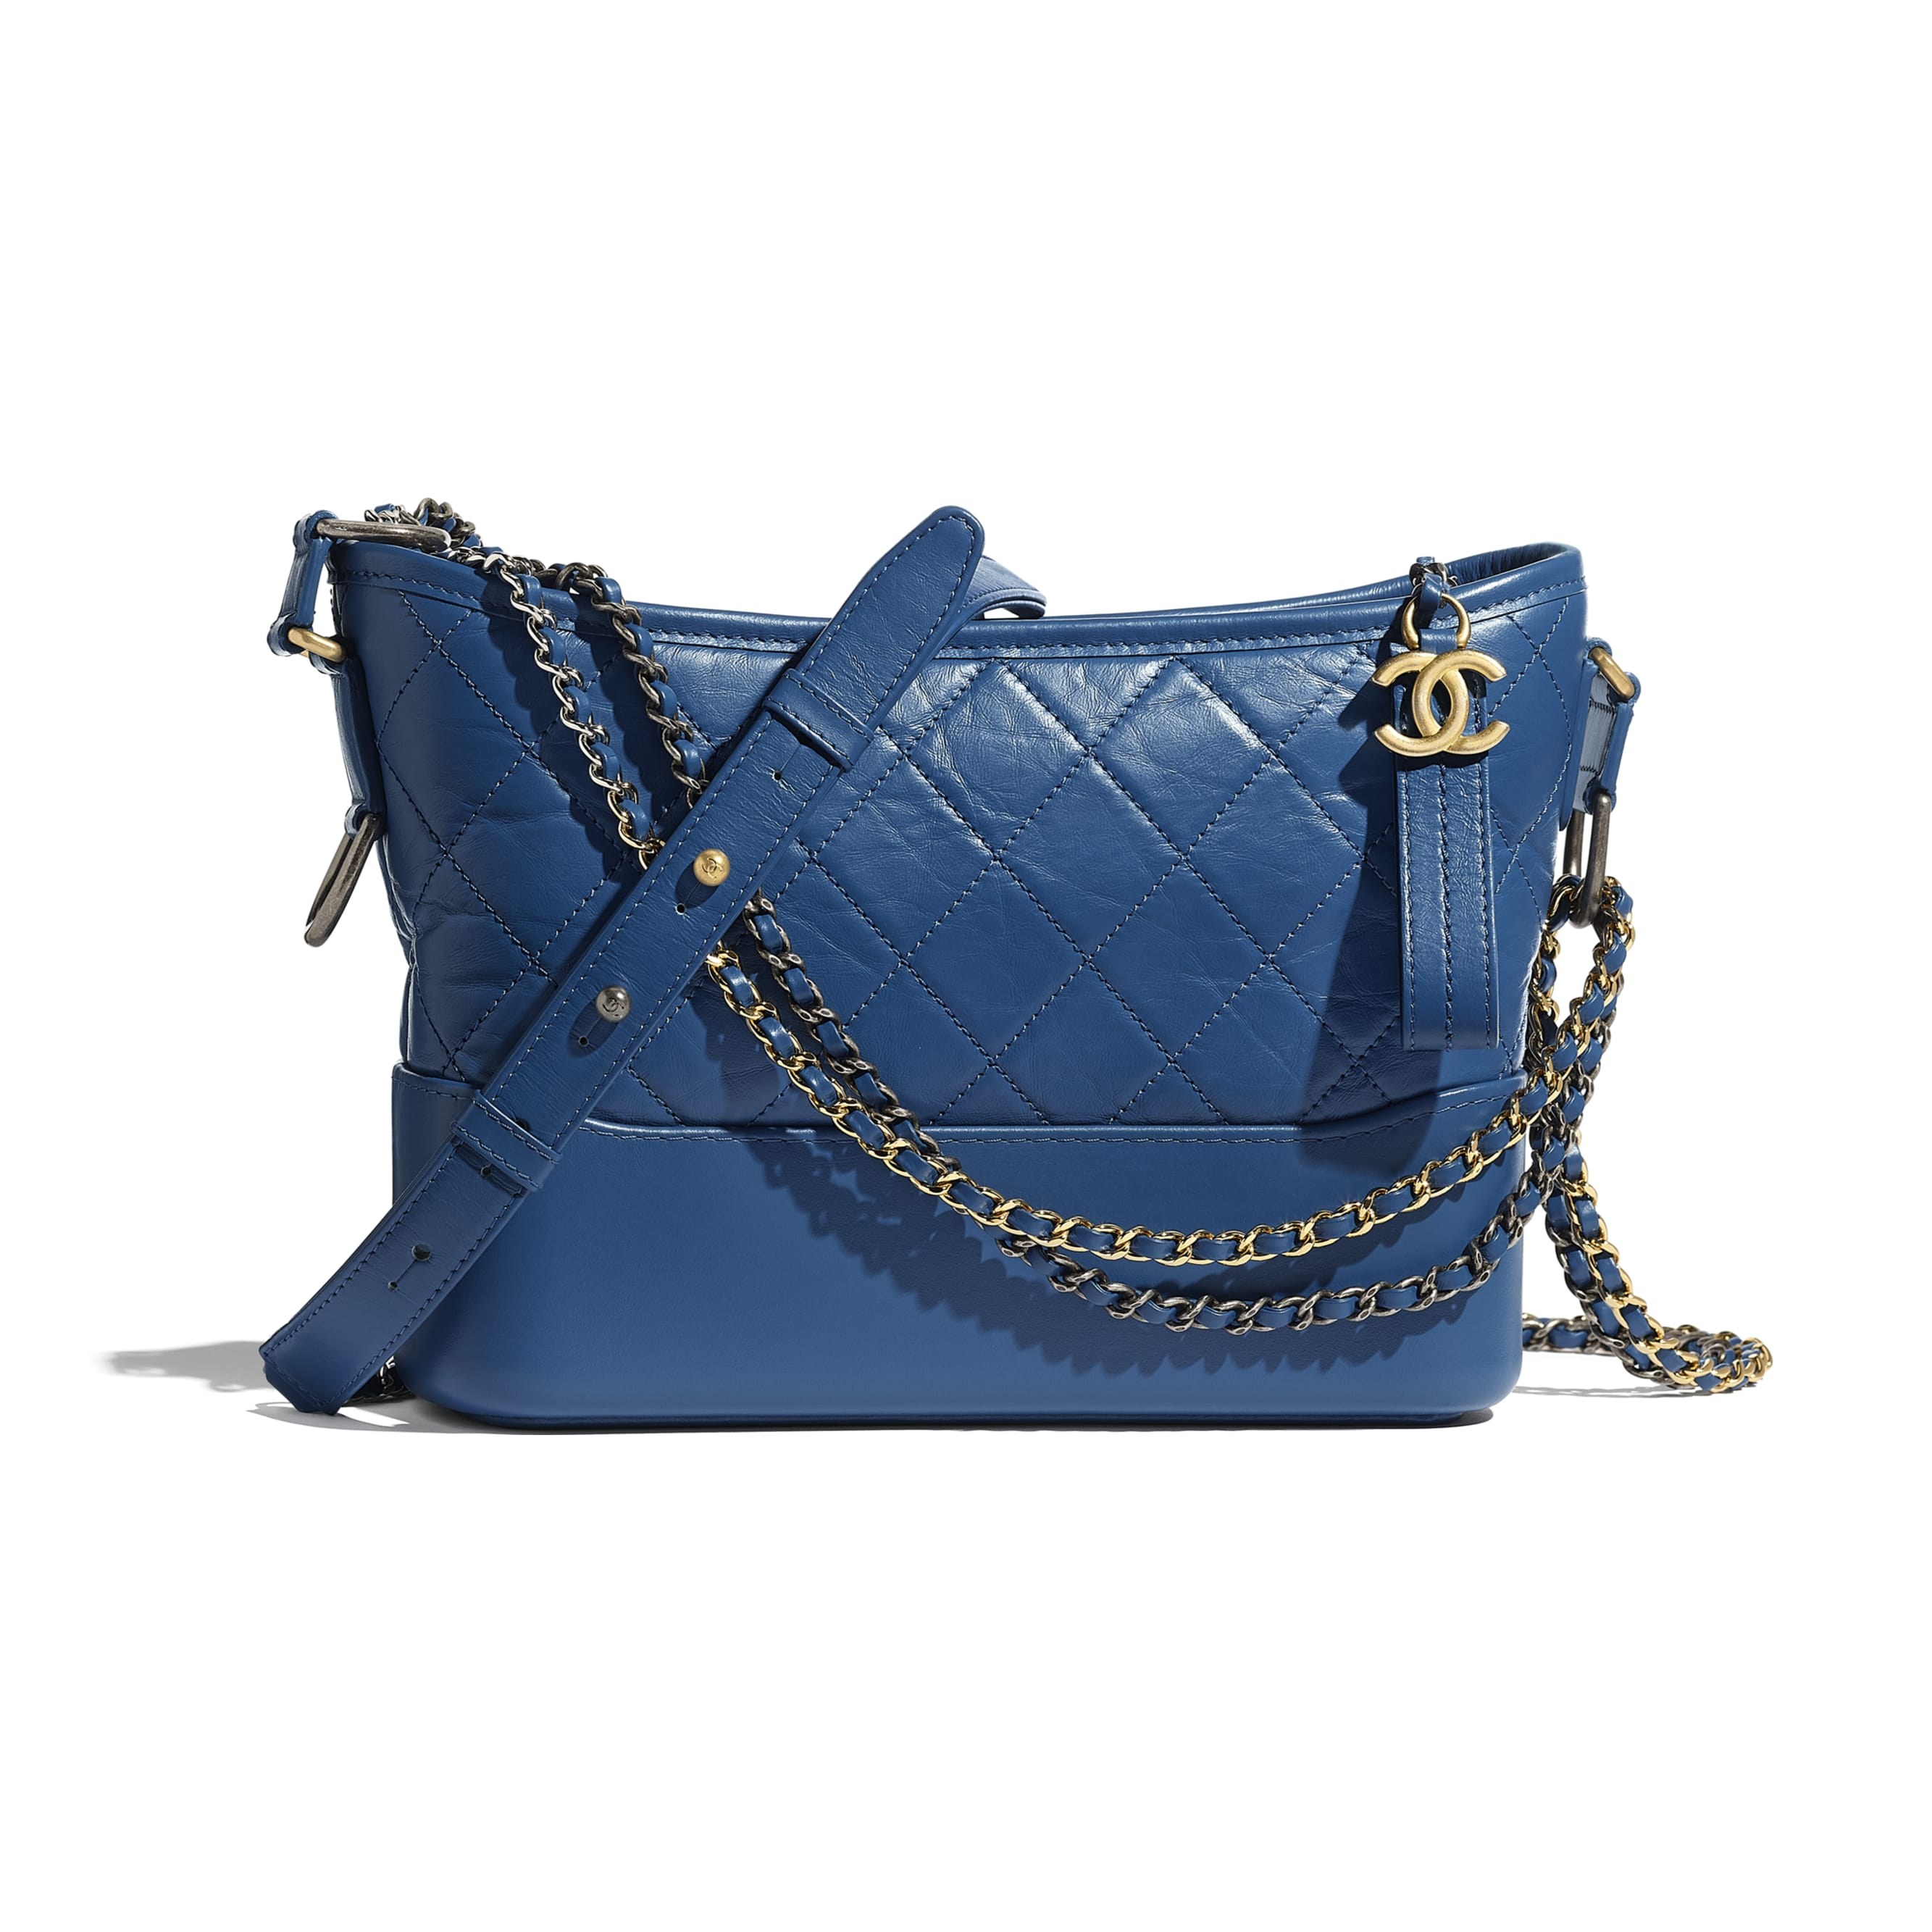 CHANEL'S GABRIELLE Hobo Handbag - Dark Blue - Aged Calfskin, Smooth Calfskin, Silver-Tone & Gold-Tone Metal - Default view - see standard sized version